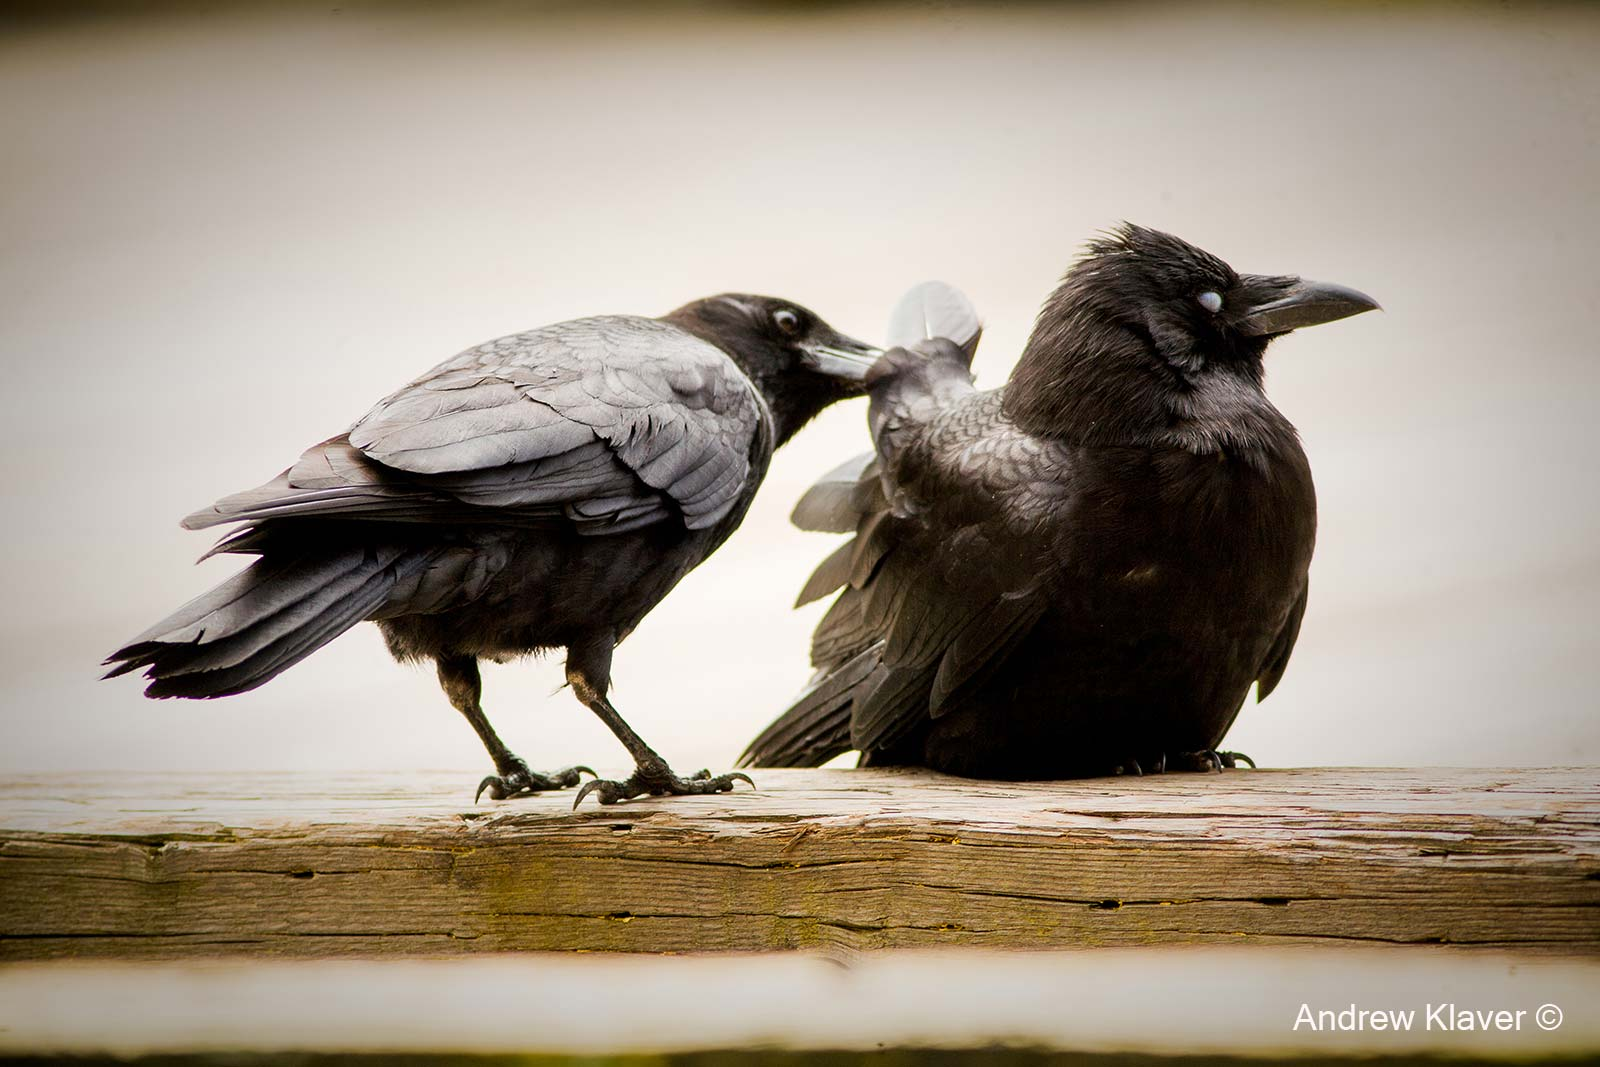 Crows grooming each other